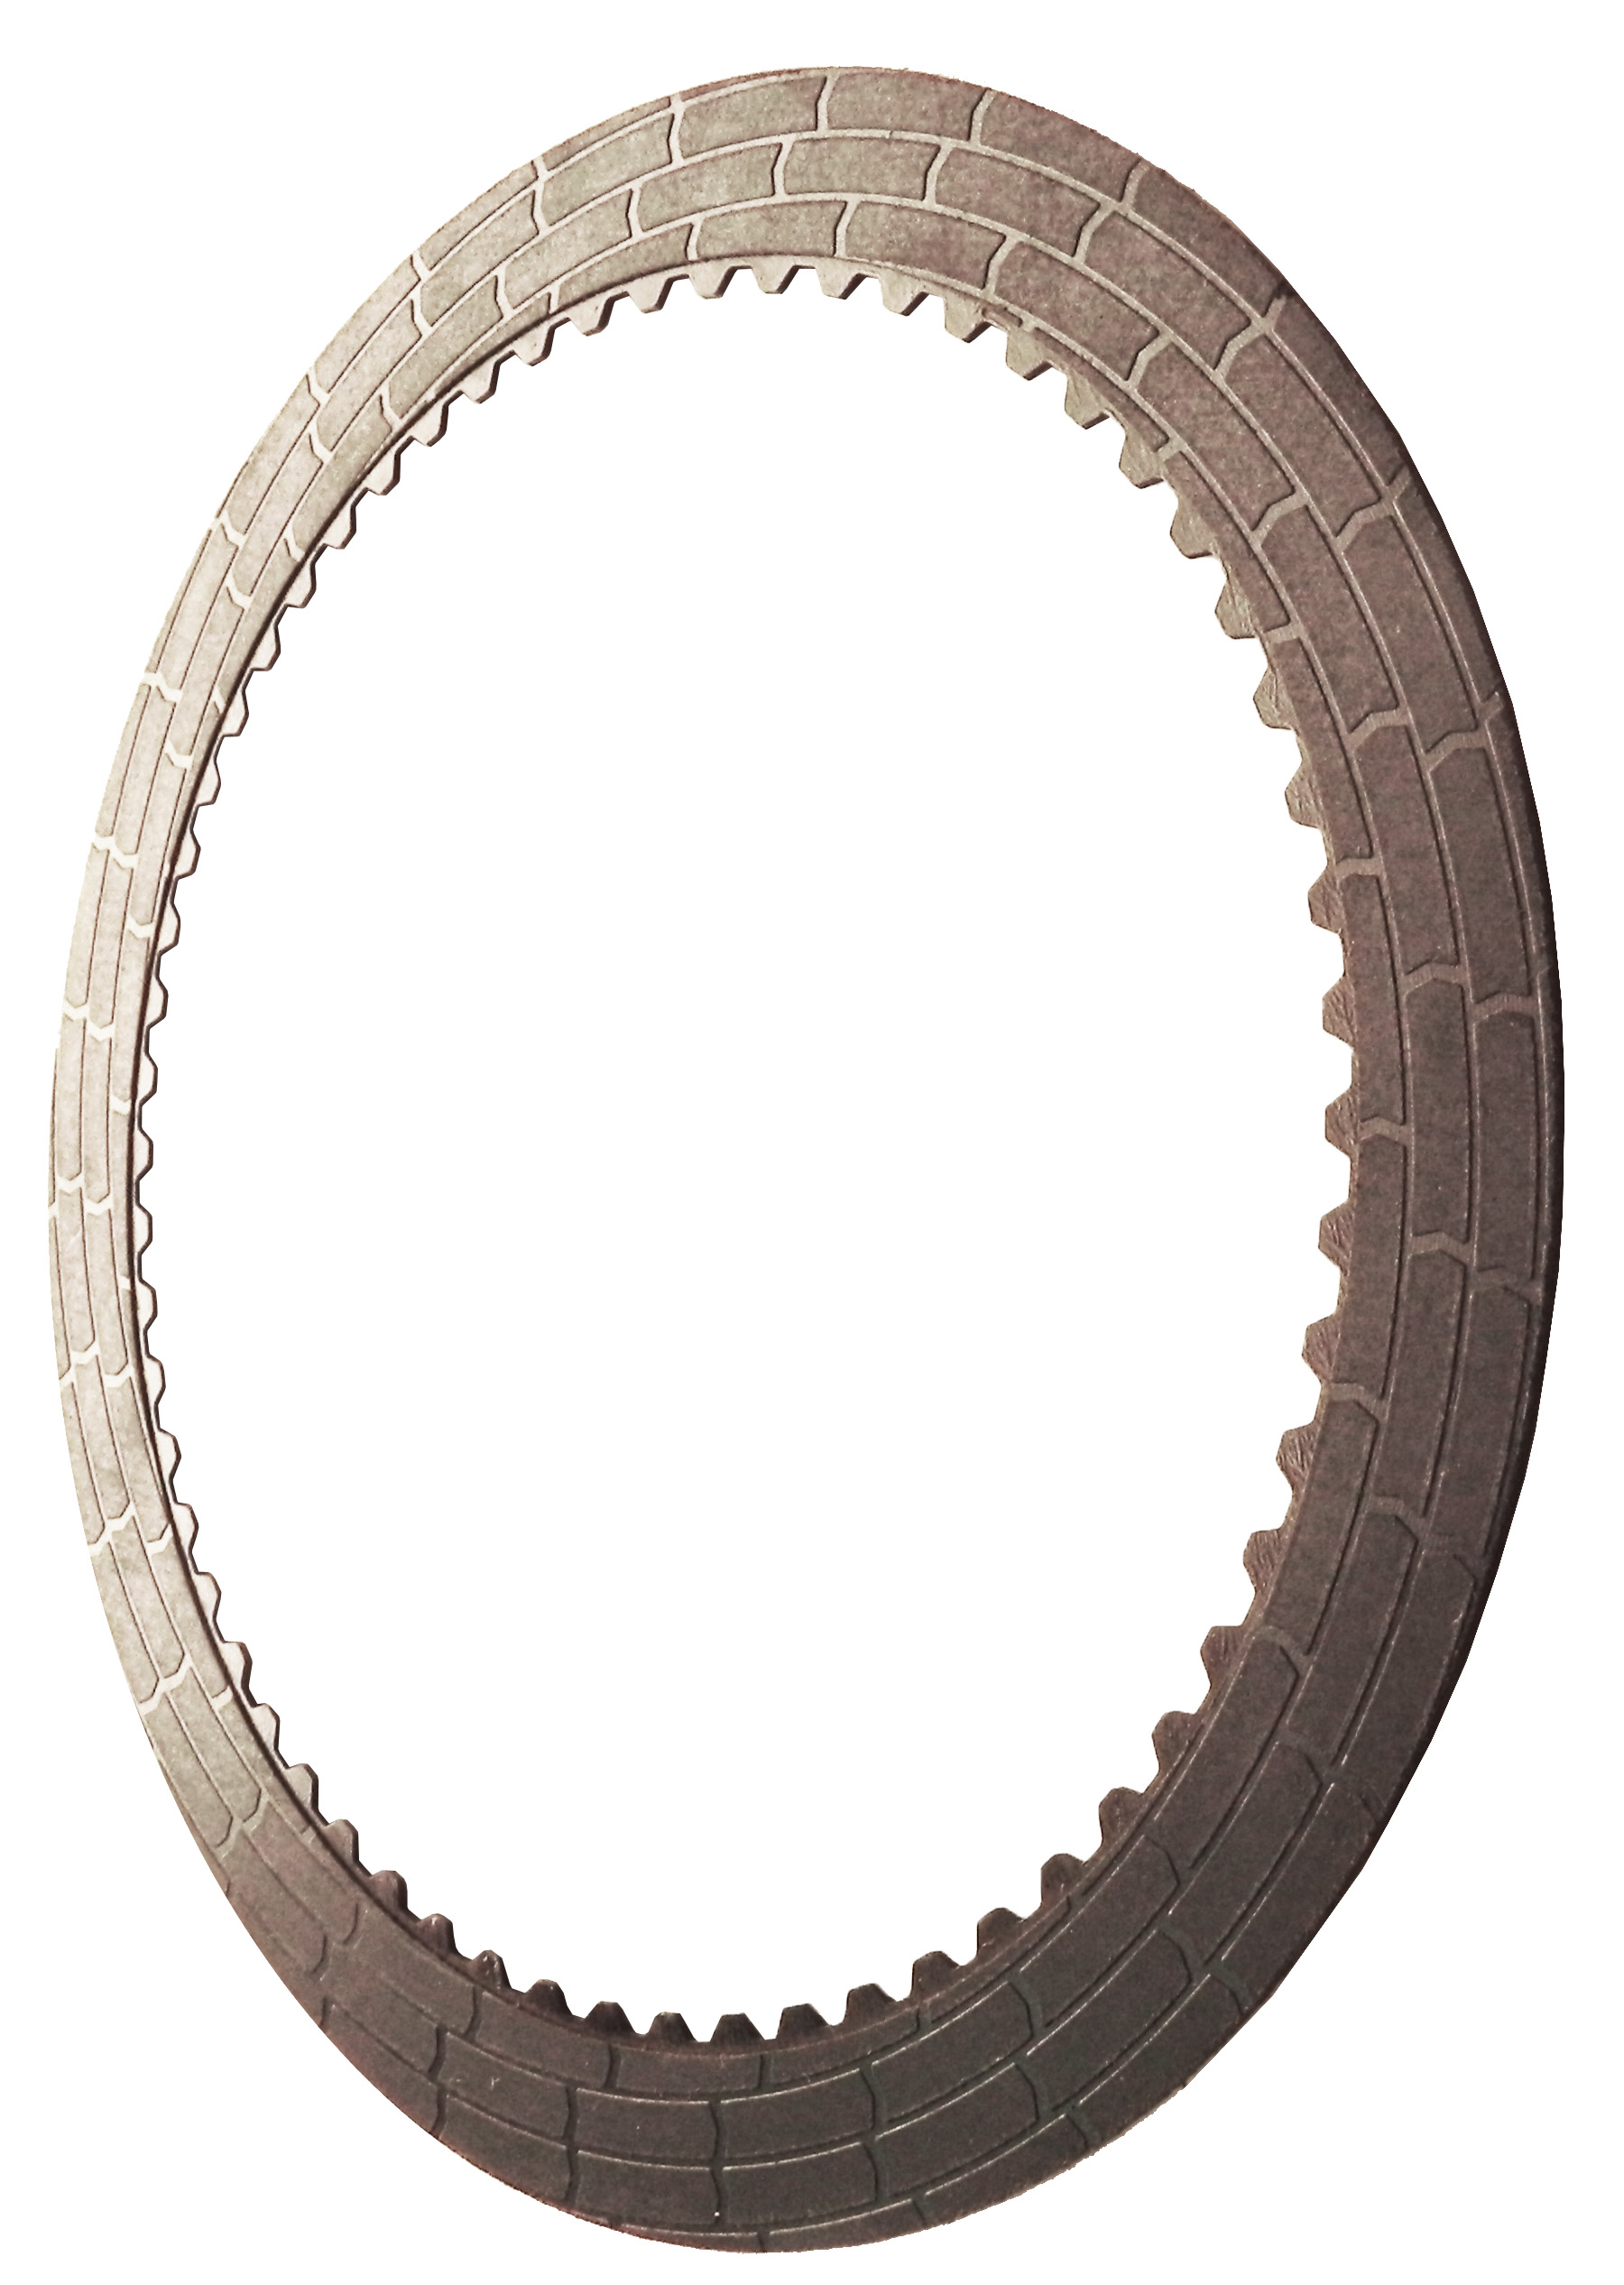 RH560575 | 1993-ON Friction Clutch Plate (HT) Hybrid Technology Intermediate Clutch Proprietary High Energy (HT)